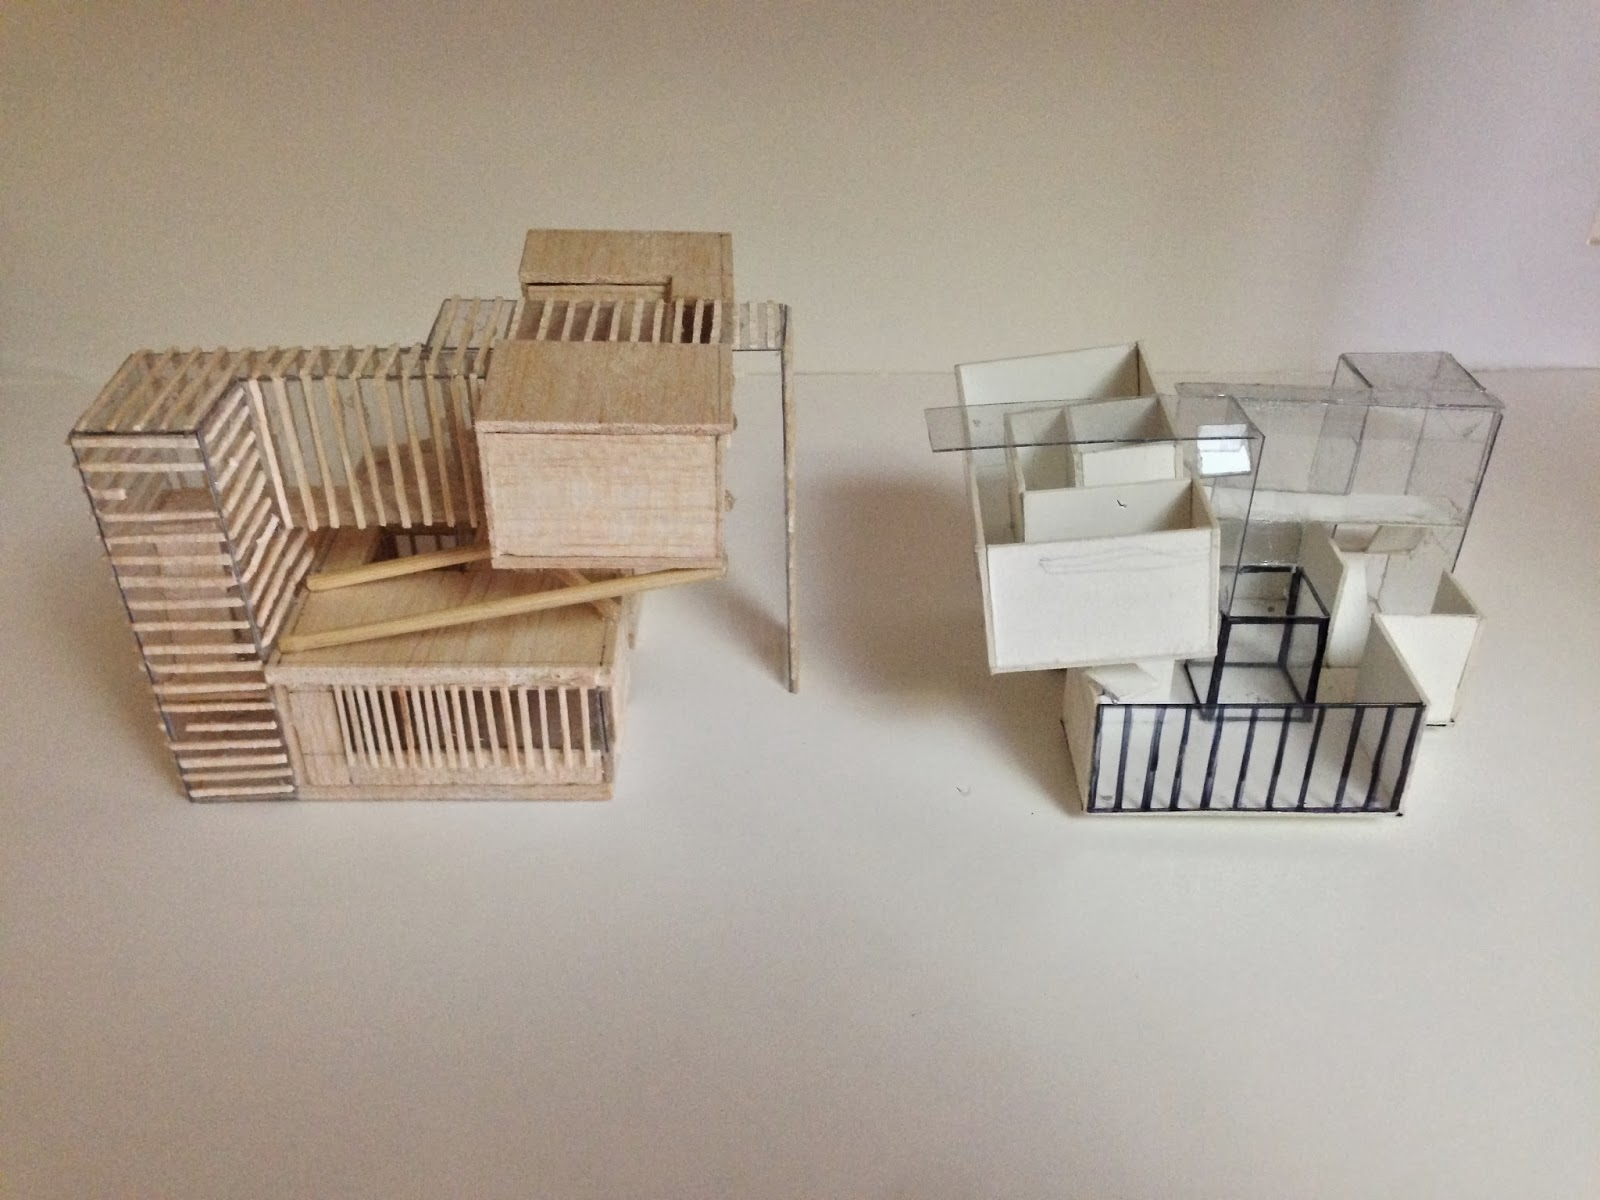 Mock Up Model Left And Study 1100 Scale